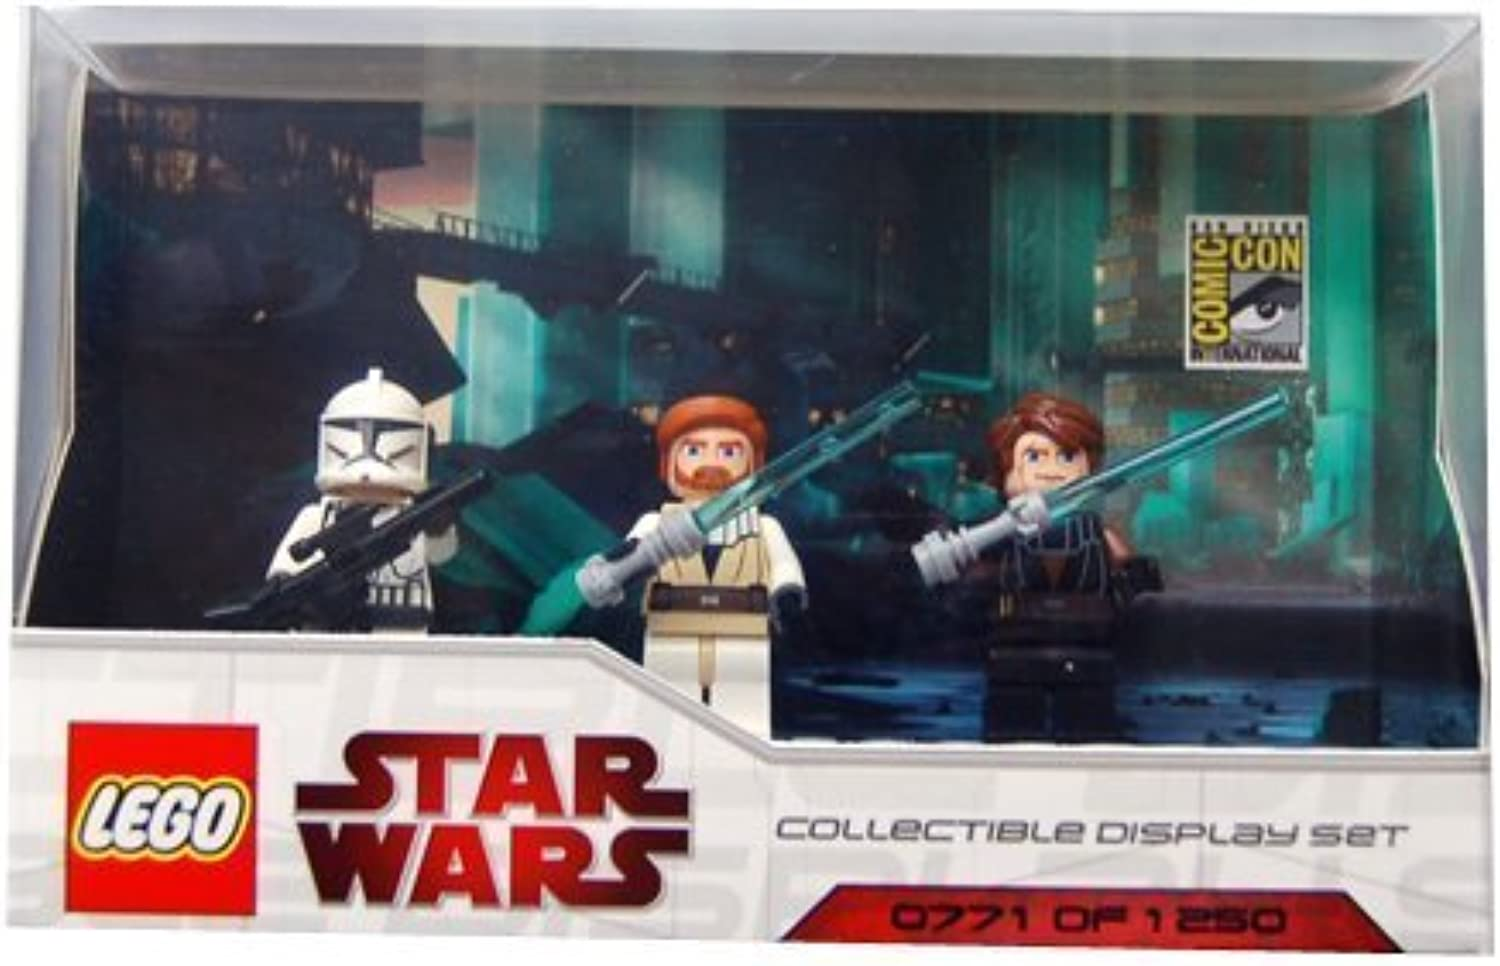 LEGO Star Wars Minifigures Set - 2009 Comic Con Exclusive (Includes Anakin, Obi-wan and Clone Trooper) by LEGO (English Manual)